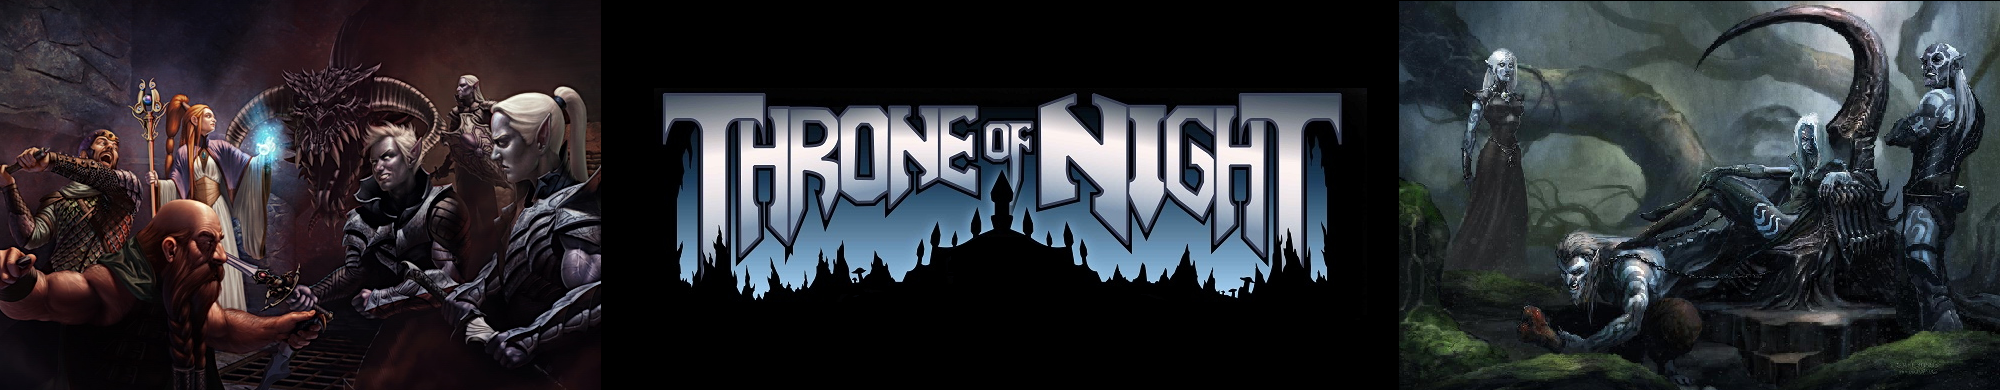 Throne of night banner  4